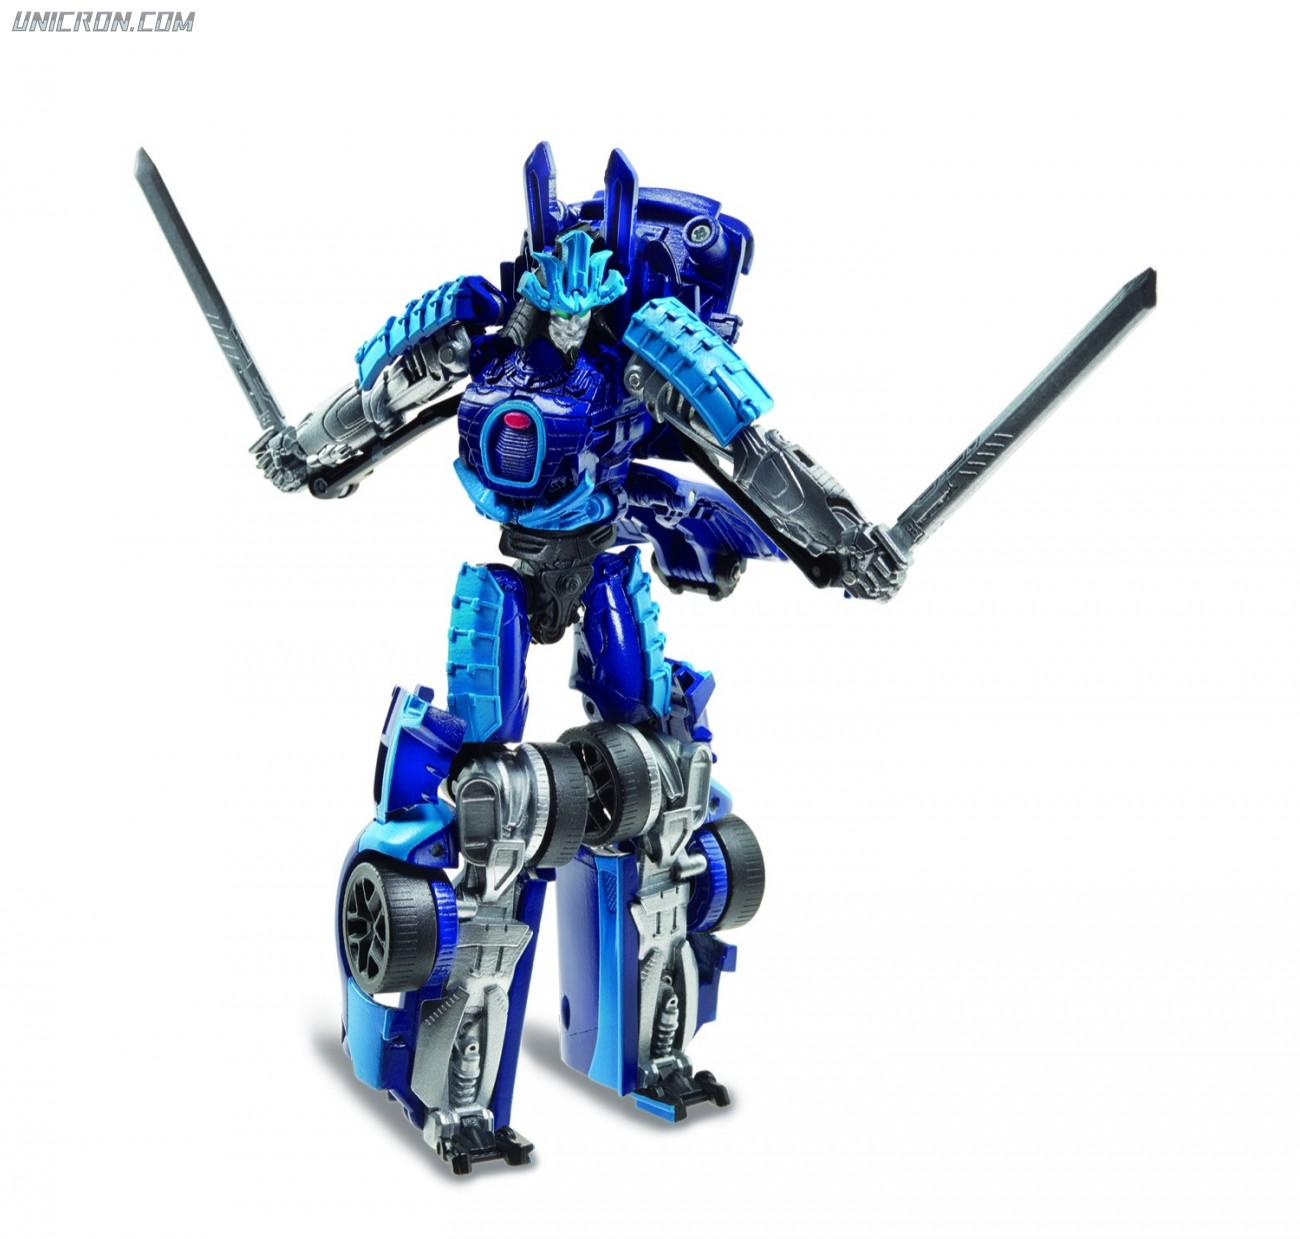 Transformers 4 Age of Extinction Drift - AoE Power Battlers toy